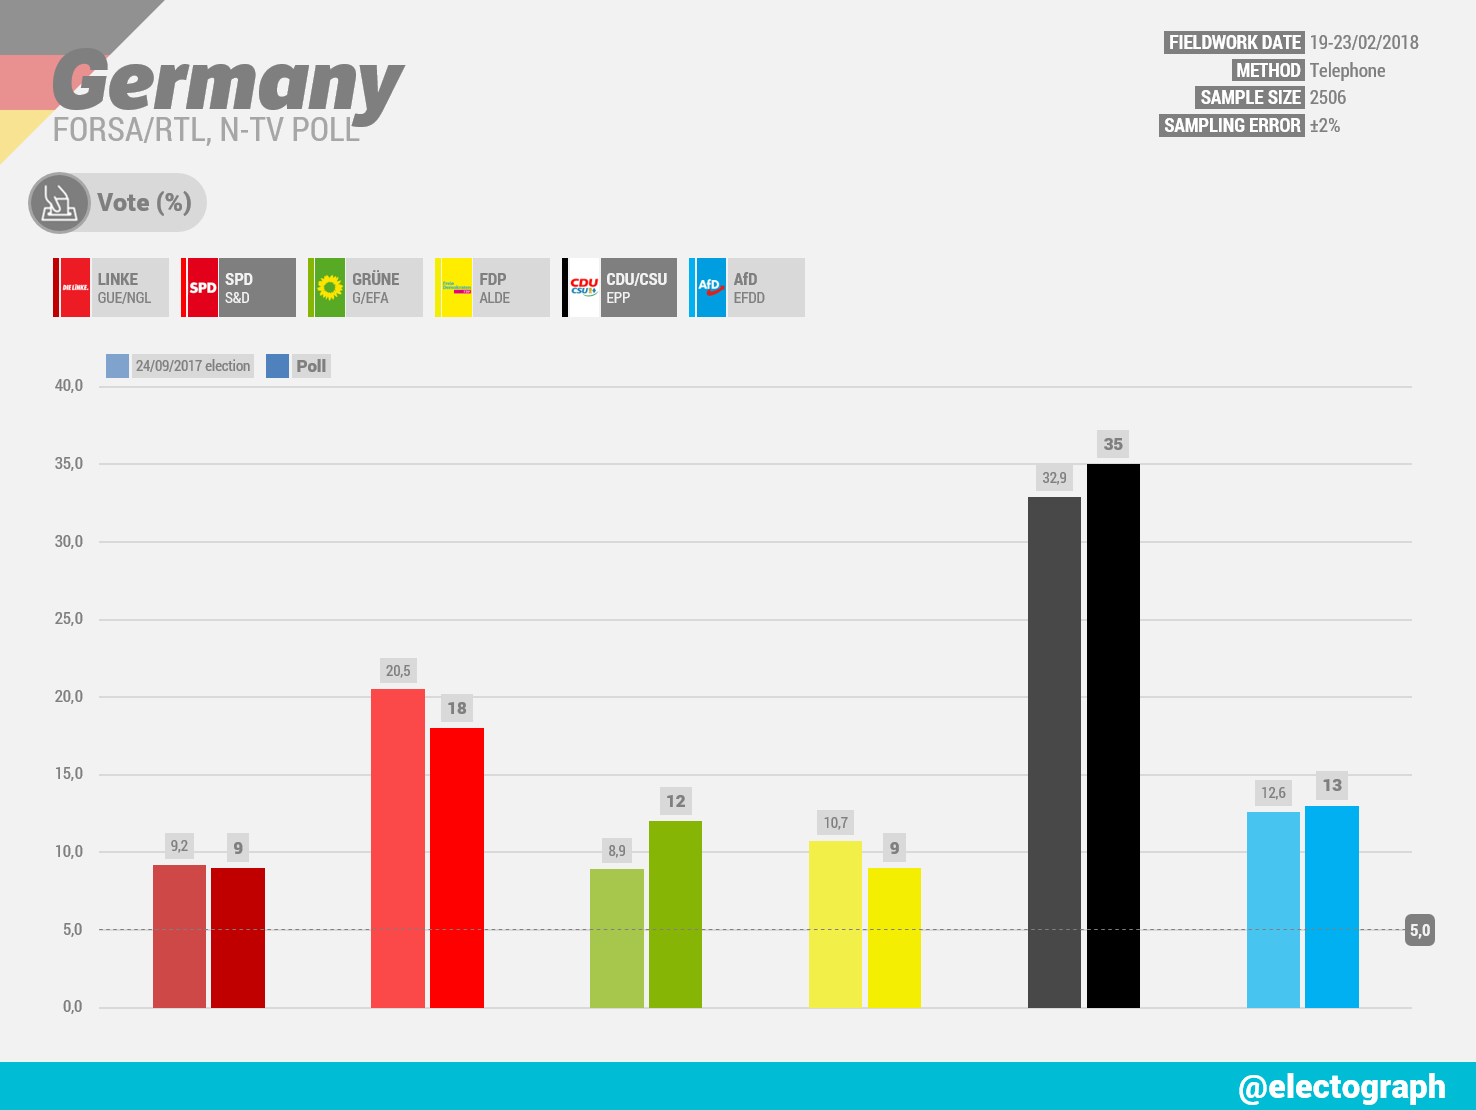 GERMANY Forsa poll chart for RTL and n-tv, February 2018